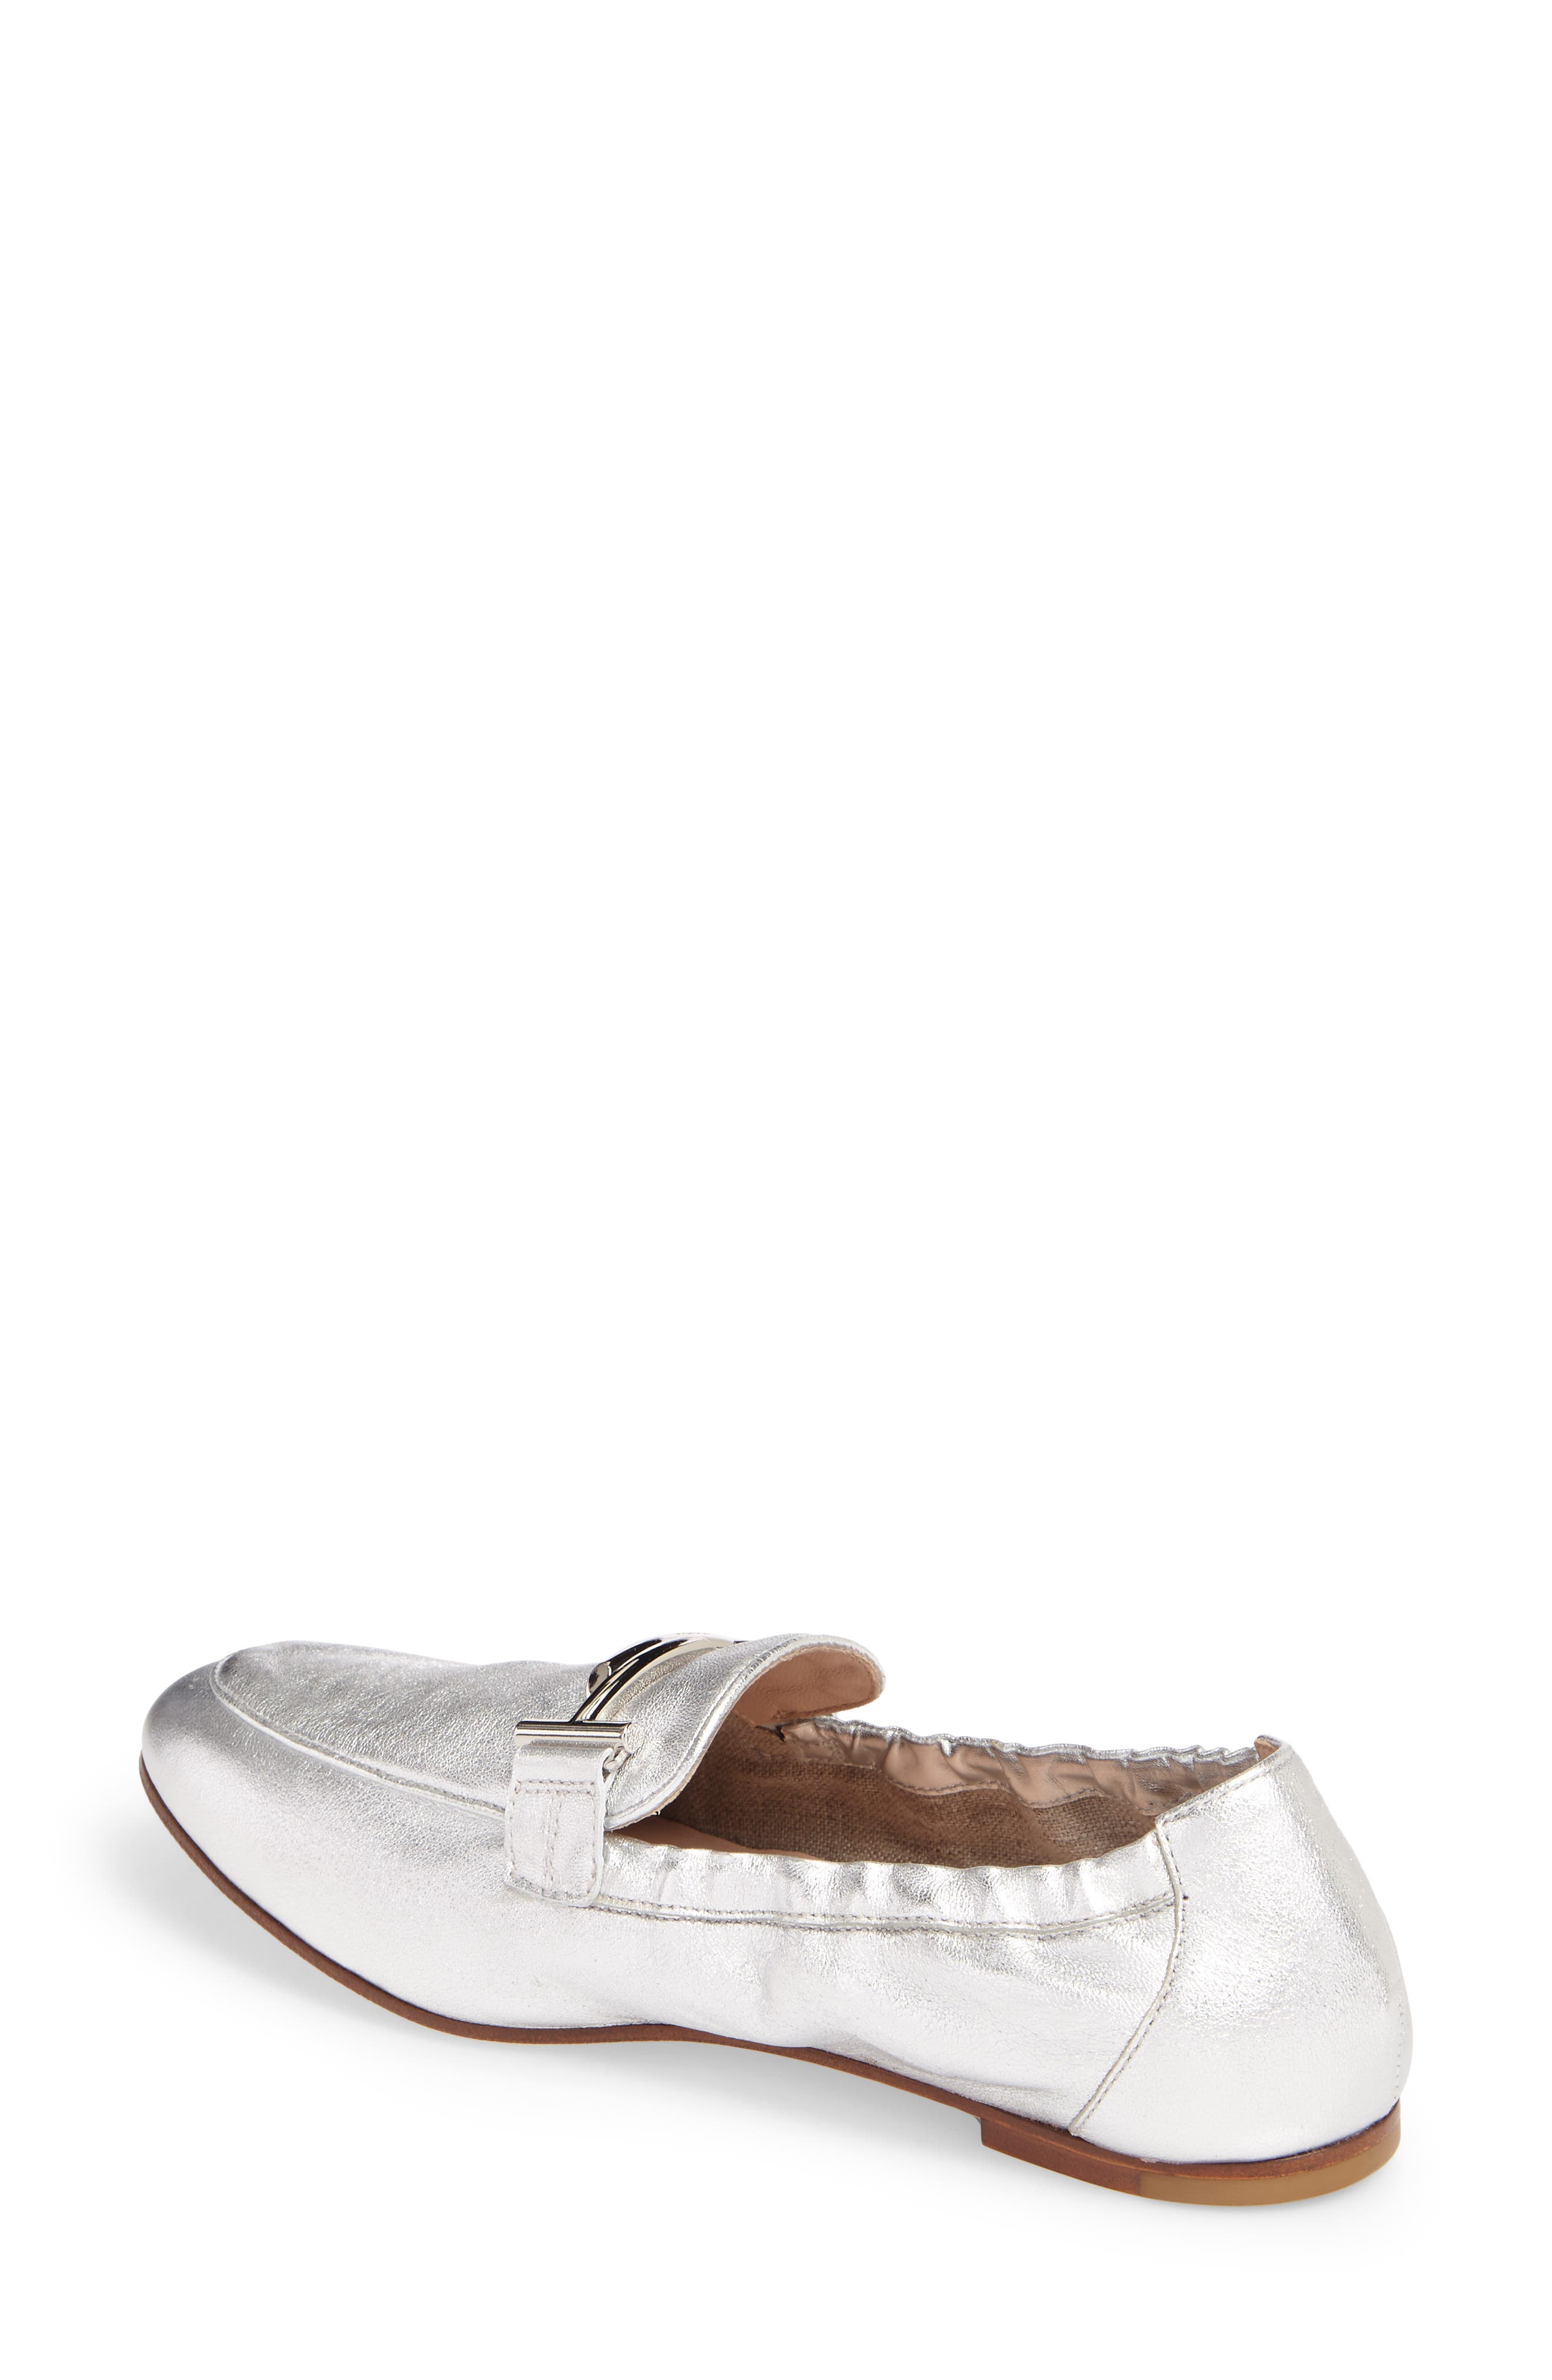 Double T Scrunch Loafer,                             Alternate thumbnail 2, color,                             Silver